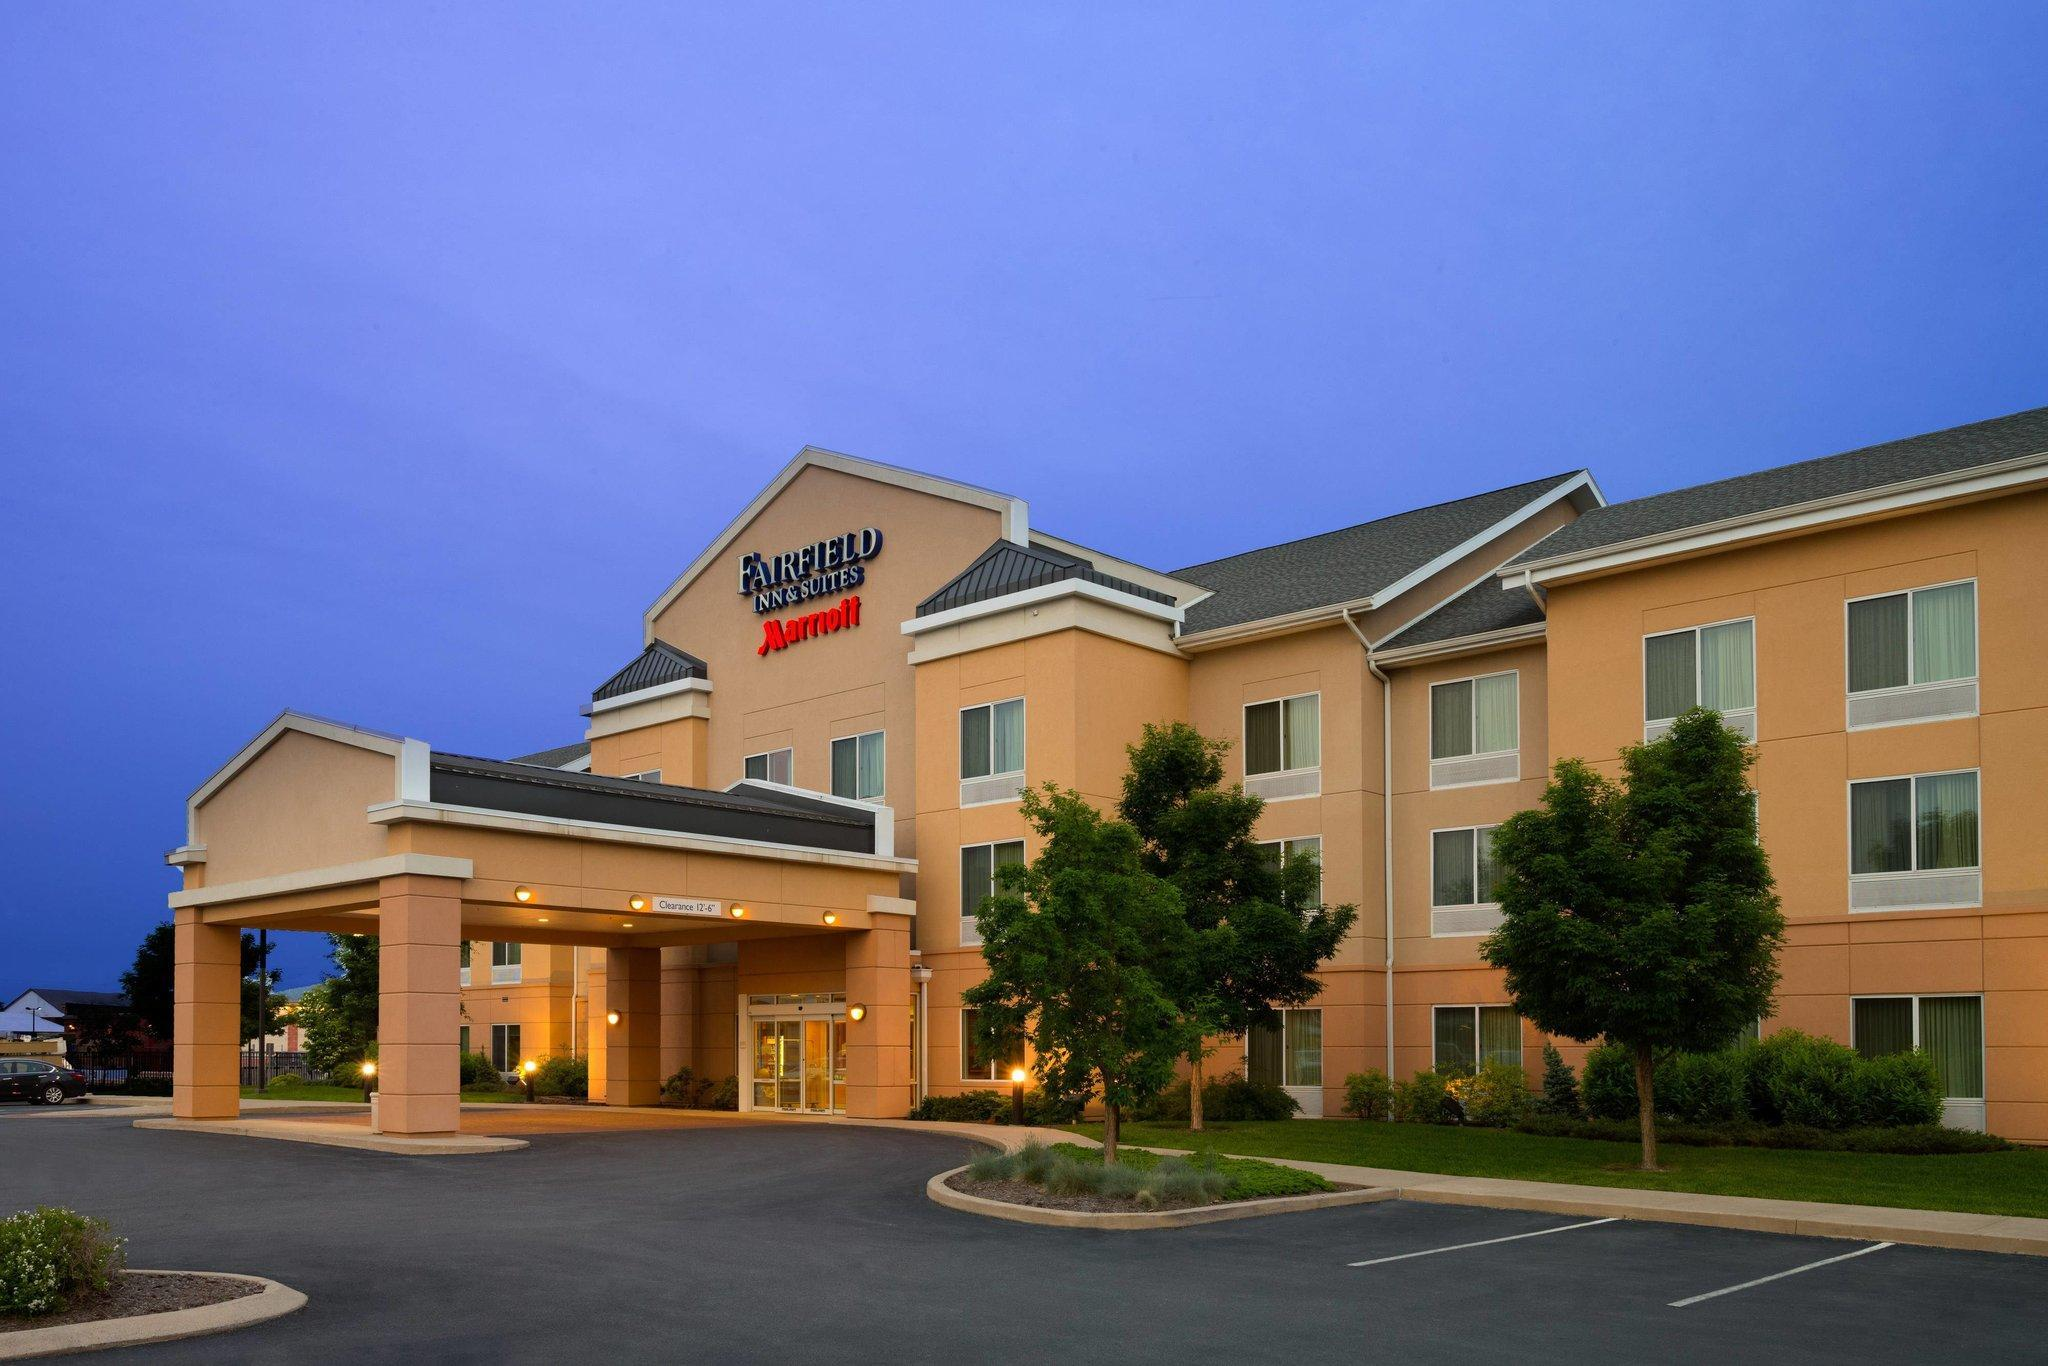 Fairfield Inn And Suites Lock Haven